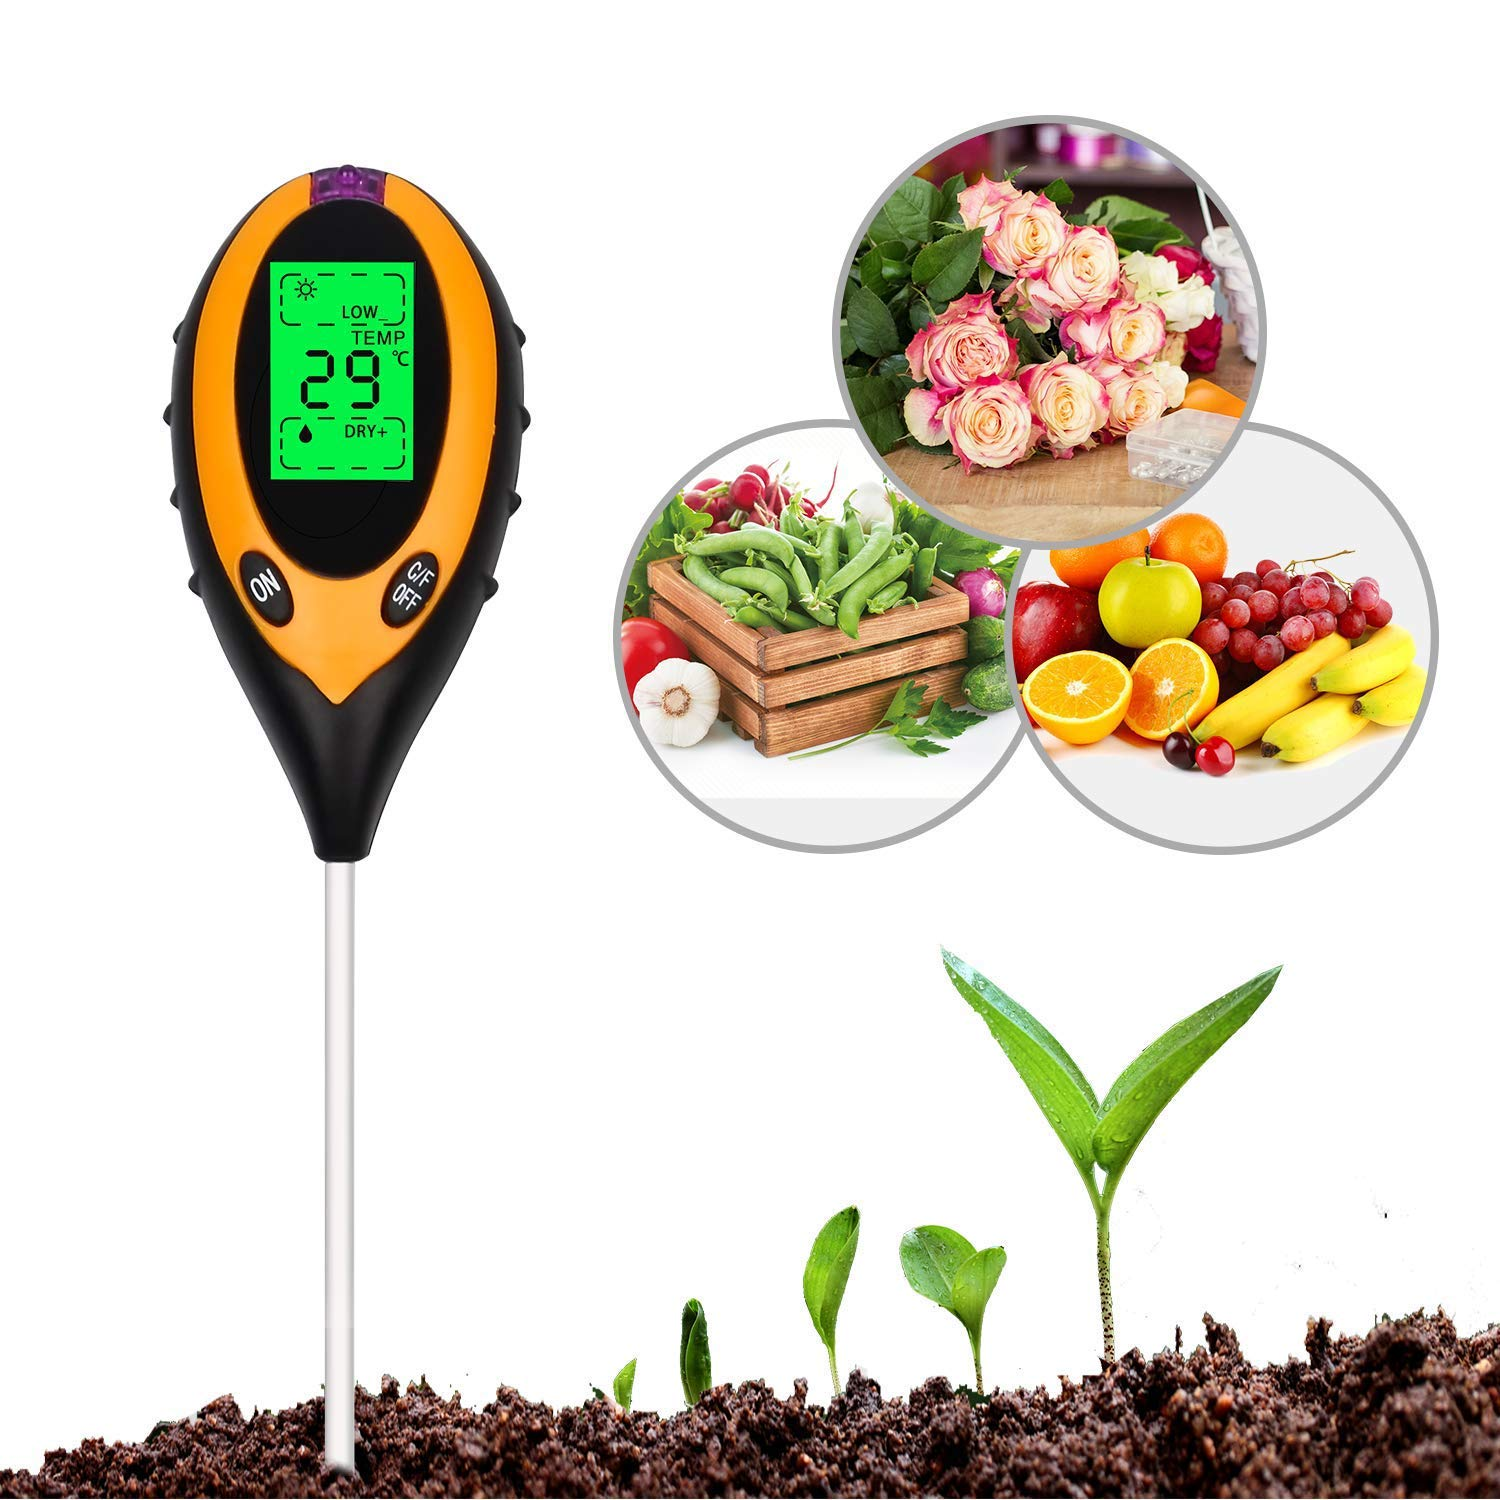 Indoor /& Outdoor Use Lawn Promote Plants Farm Soil Tester Digital Display 4 In1 PH Meter Temperature Moisture Humidity Sunlight Tester for Agriculture Plants Flowers, Garden